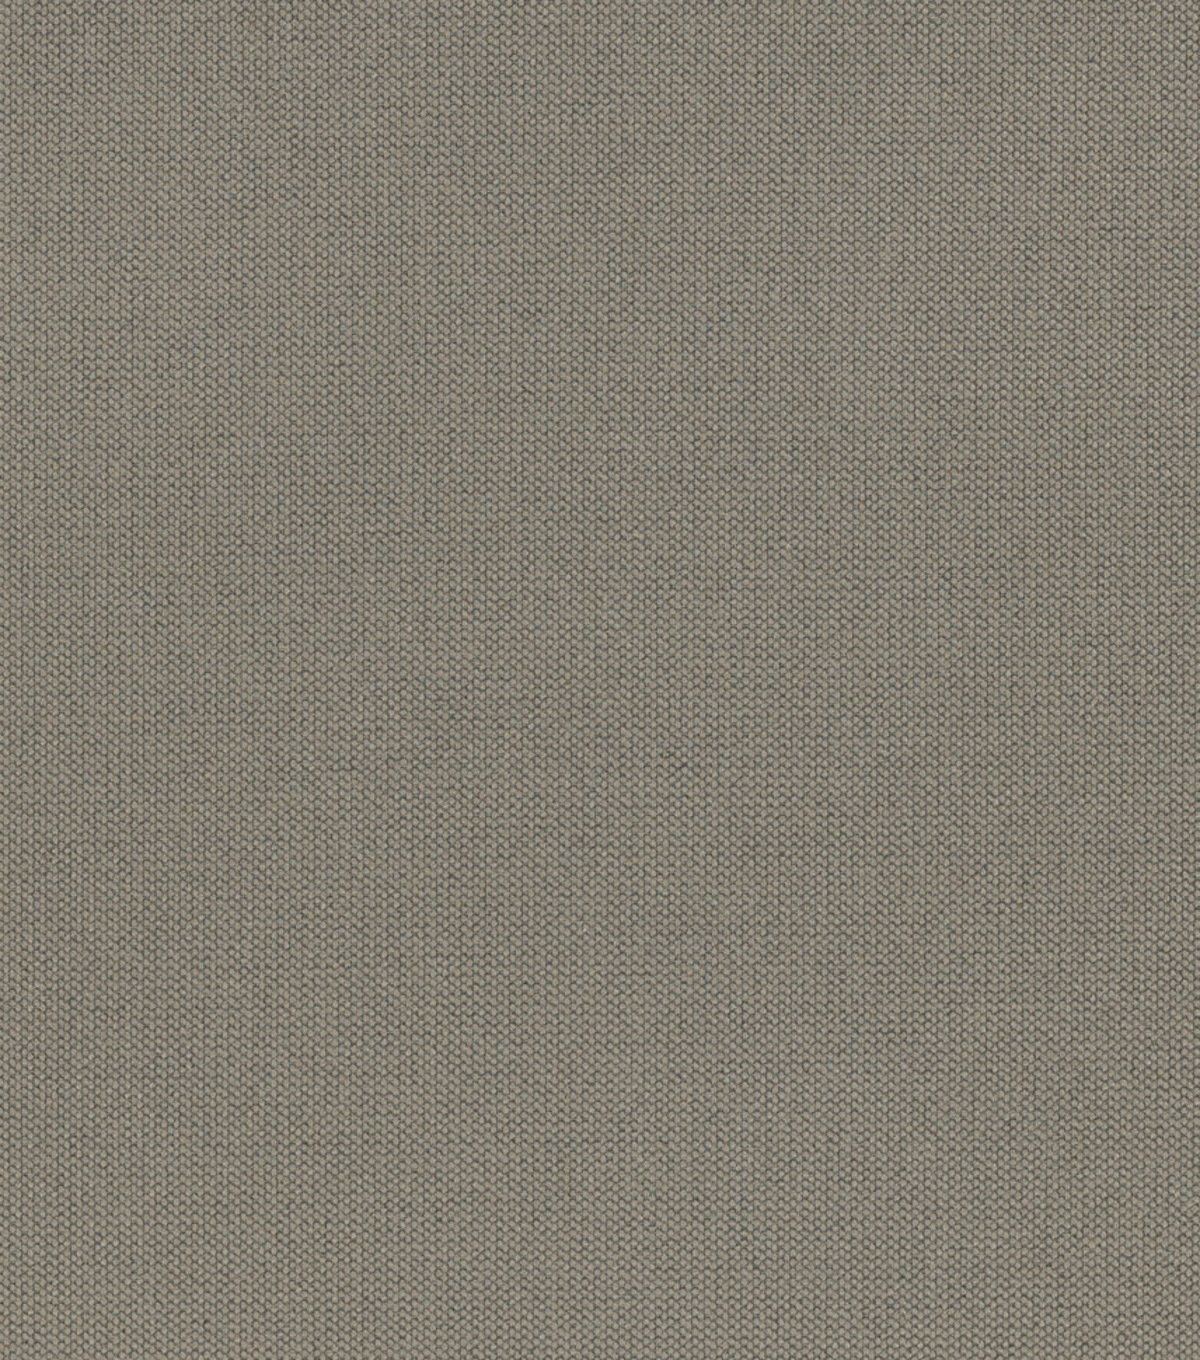 "Home Decor 8""x8"" Fabric Swatch-Motown Charcoal"